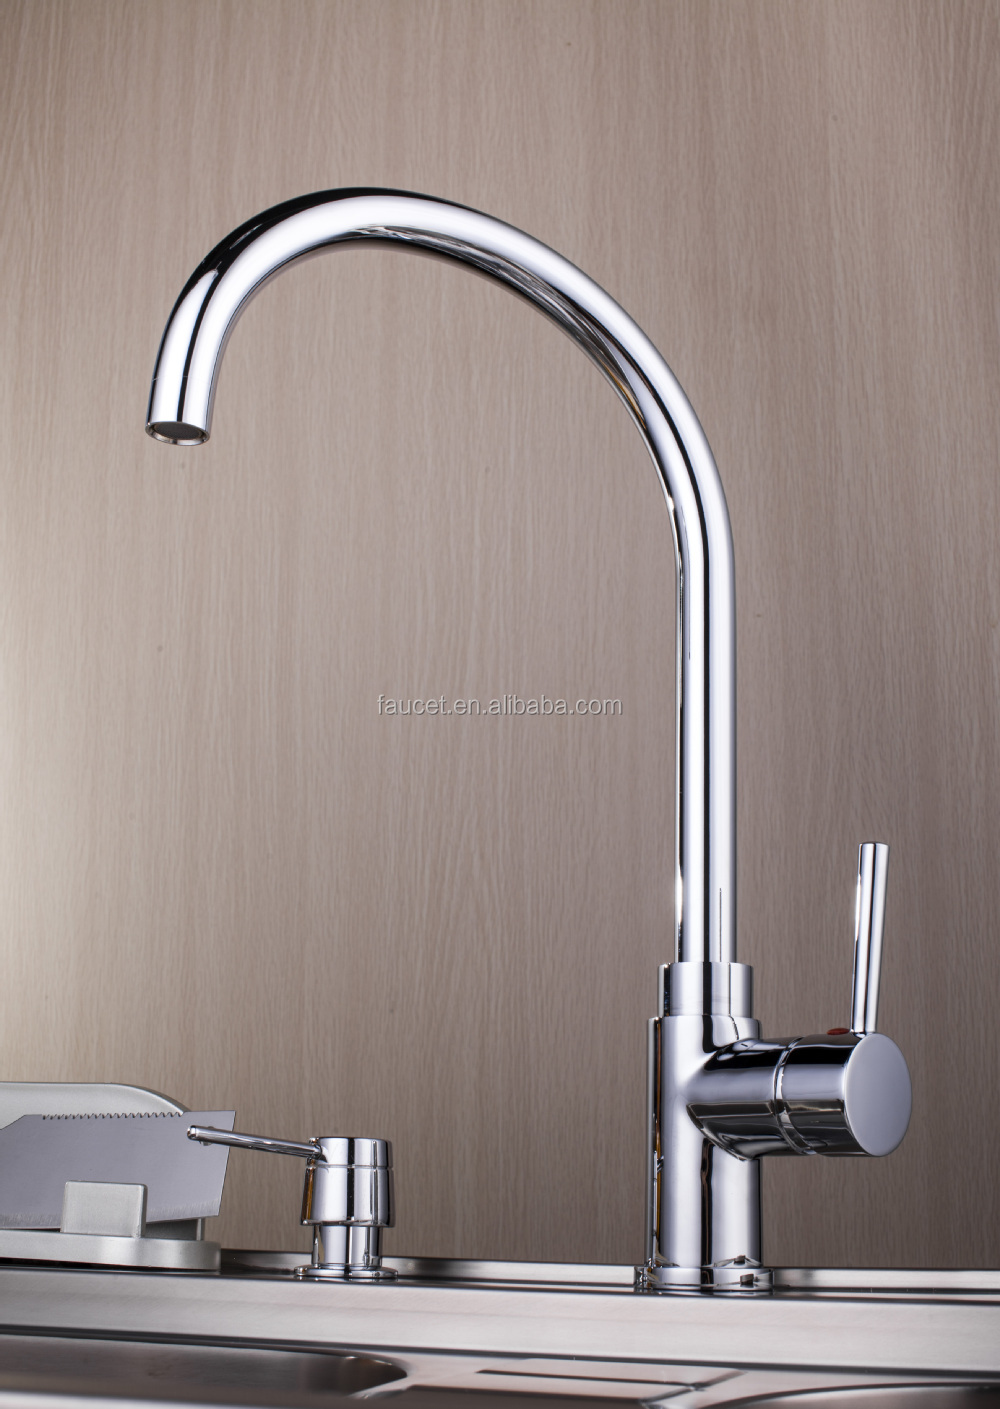 Copper 61 9 Nsf Kitchen Faucet With Goose Neck Spout Buy 61 9 Nsf Kitchen Faucet 61 9 Nsf